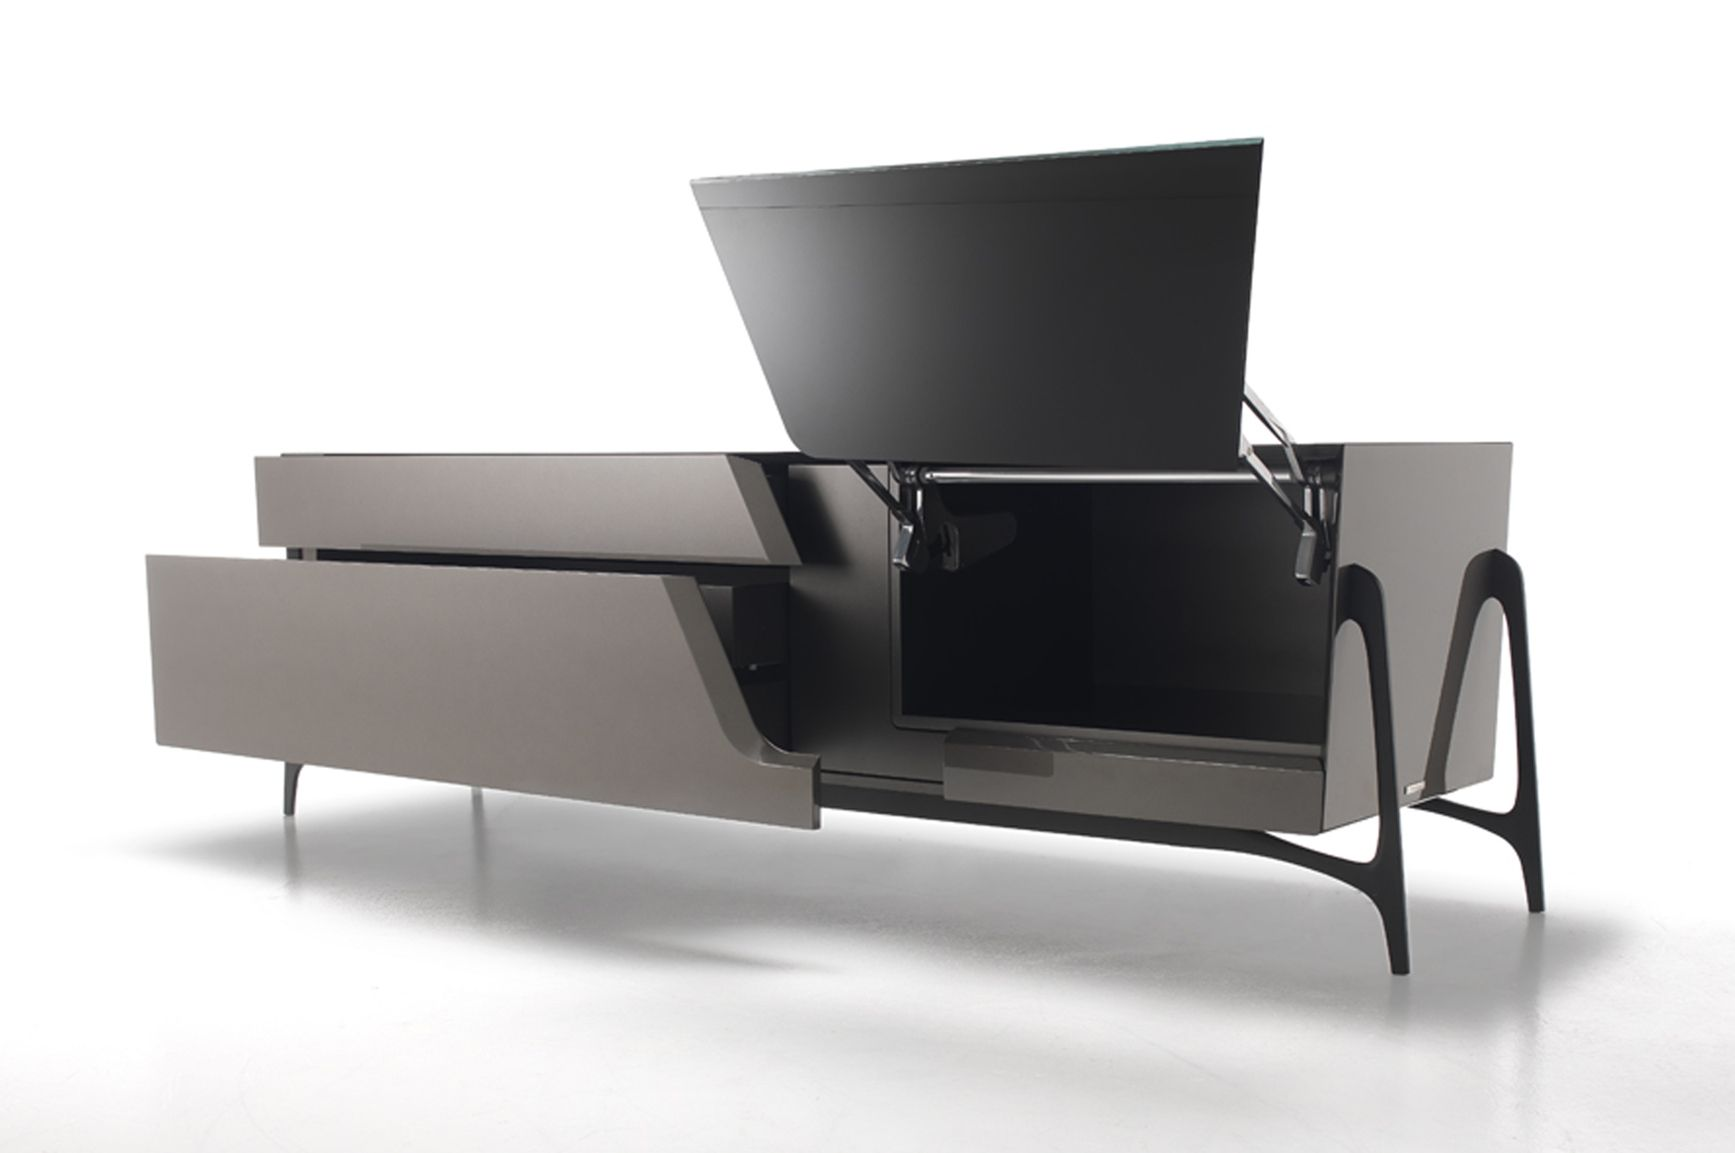 Mercedes benz style formitalia presents the new for Mercedes benz furniture